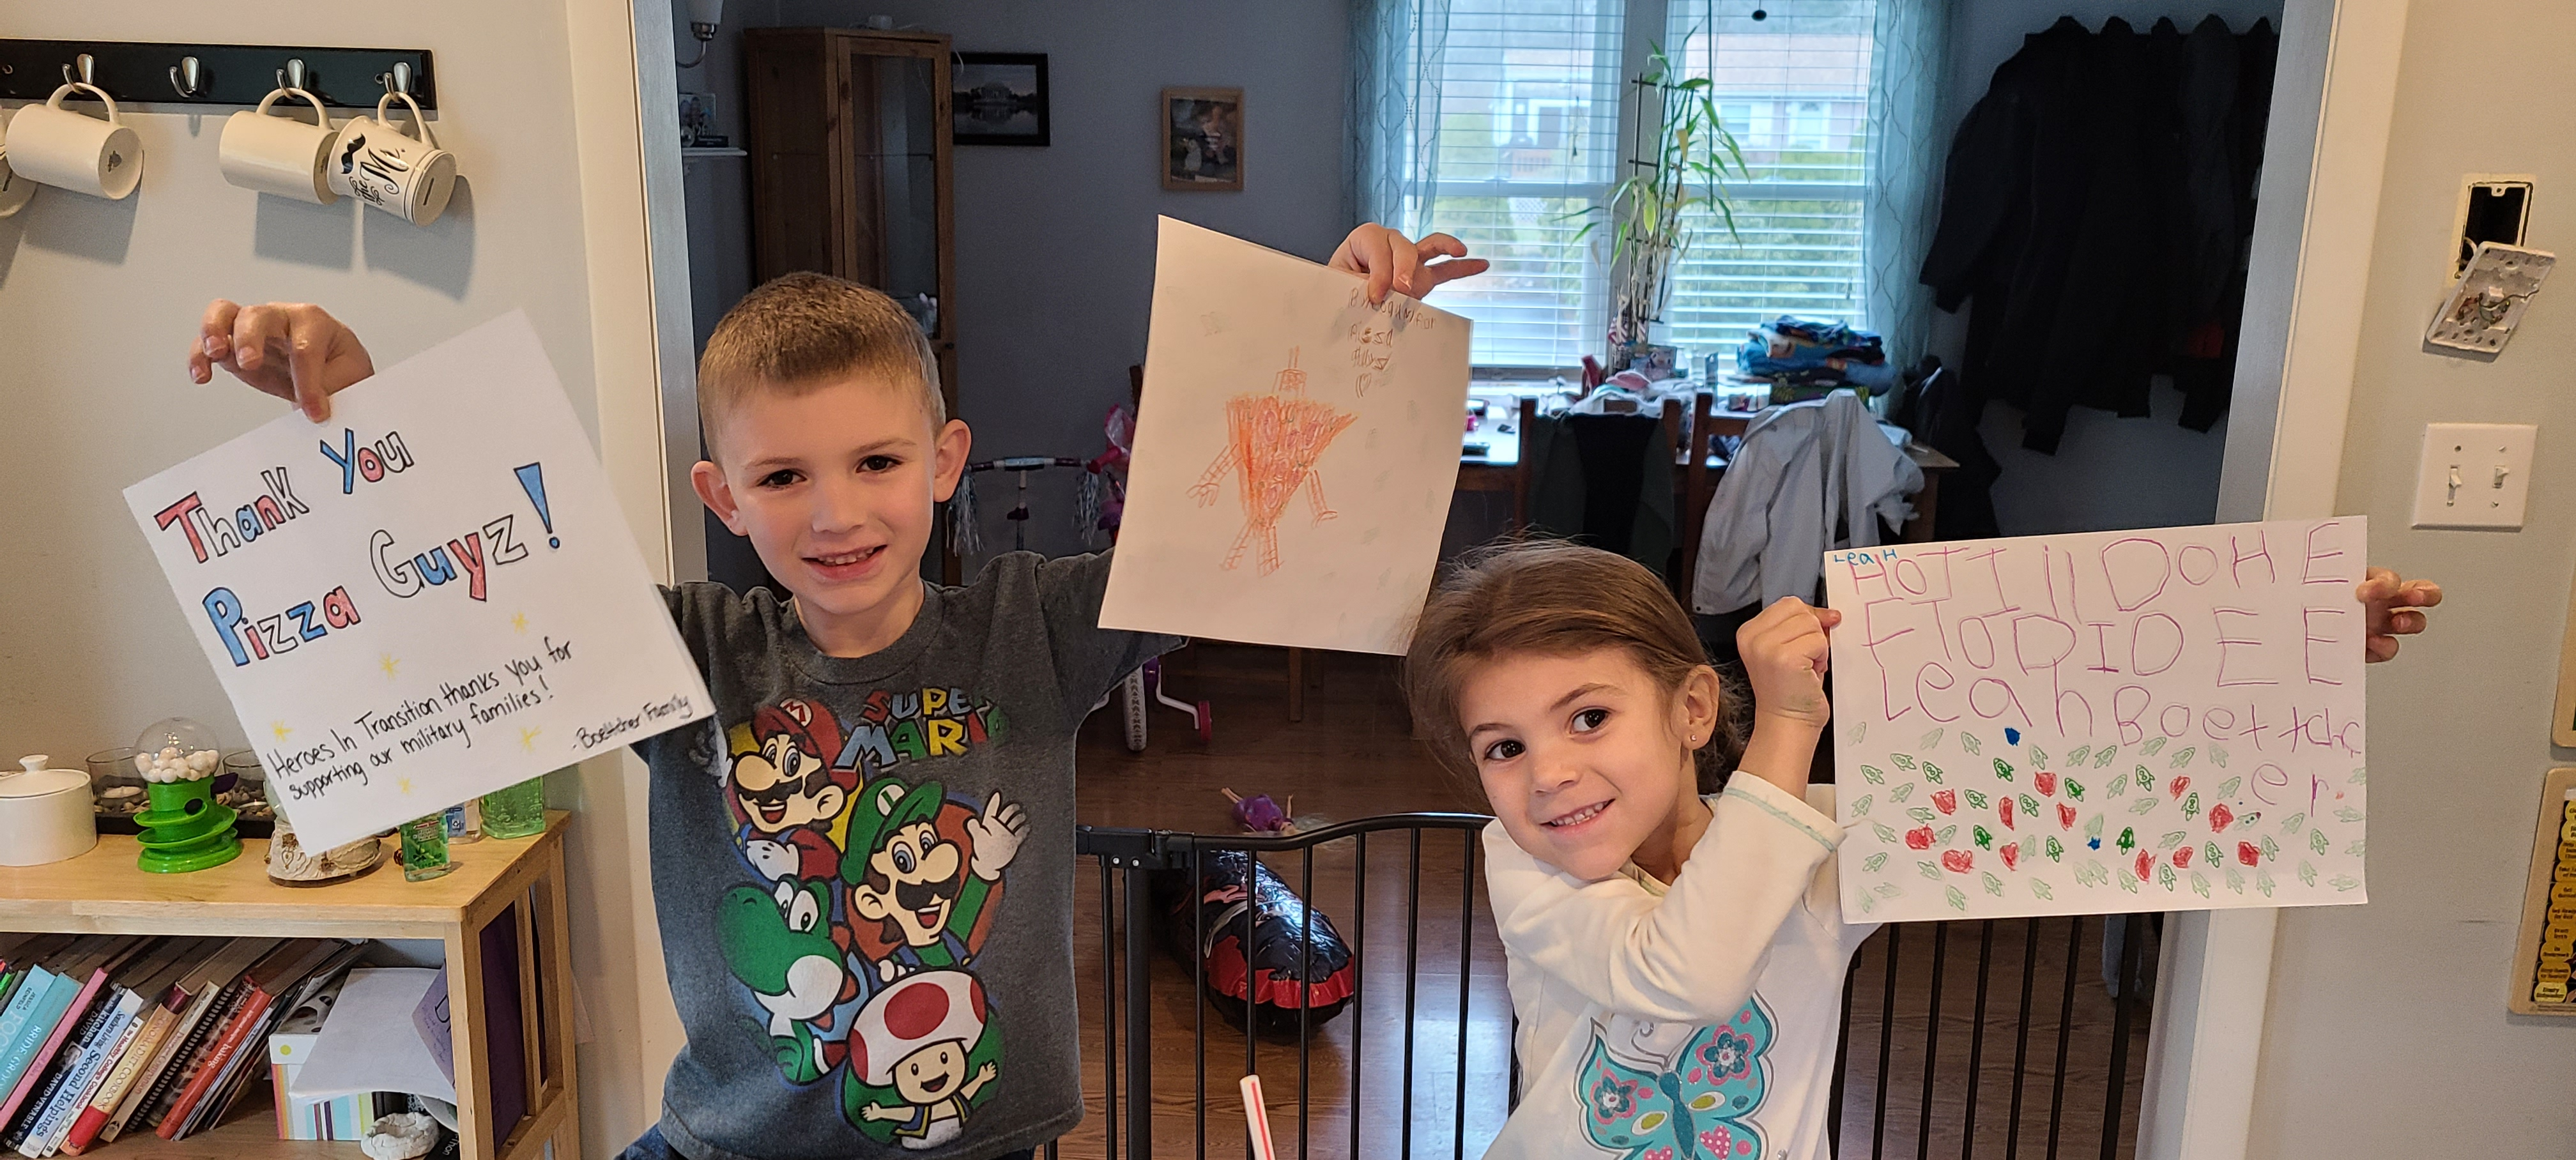 Children holding up thank you cards they made for the free pizza their families received from Heroes In Transition.